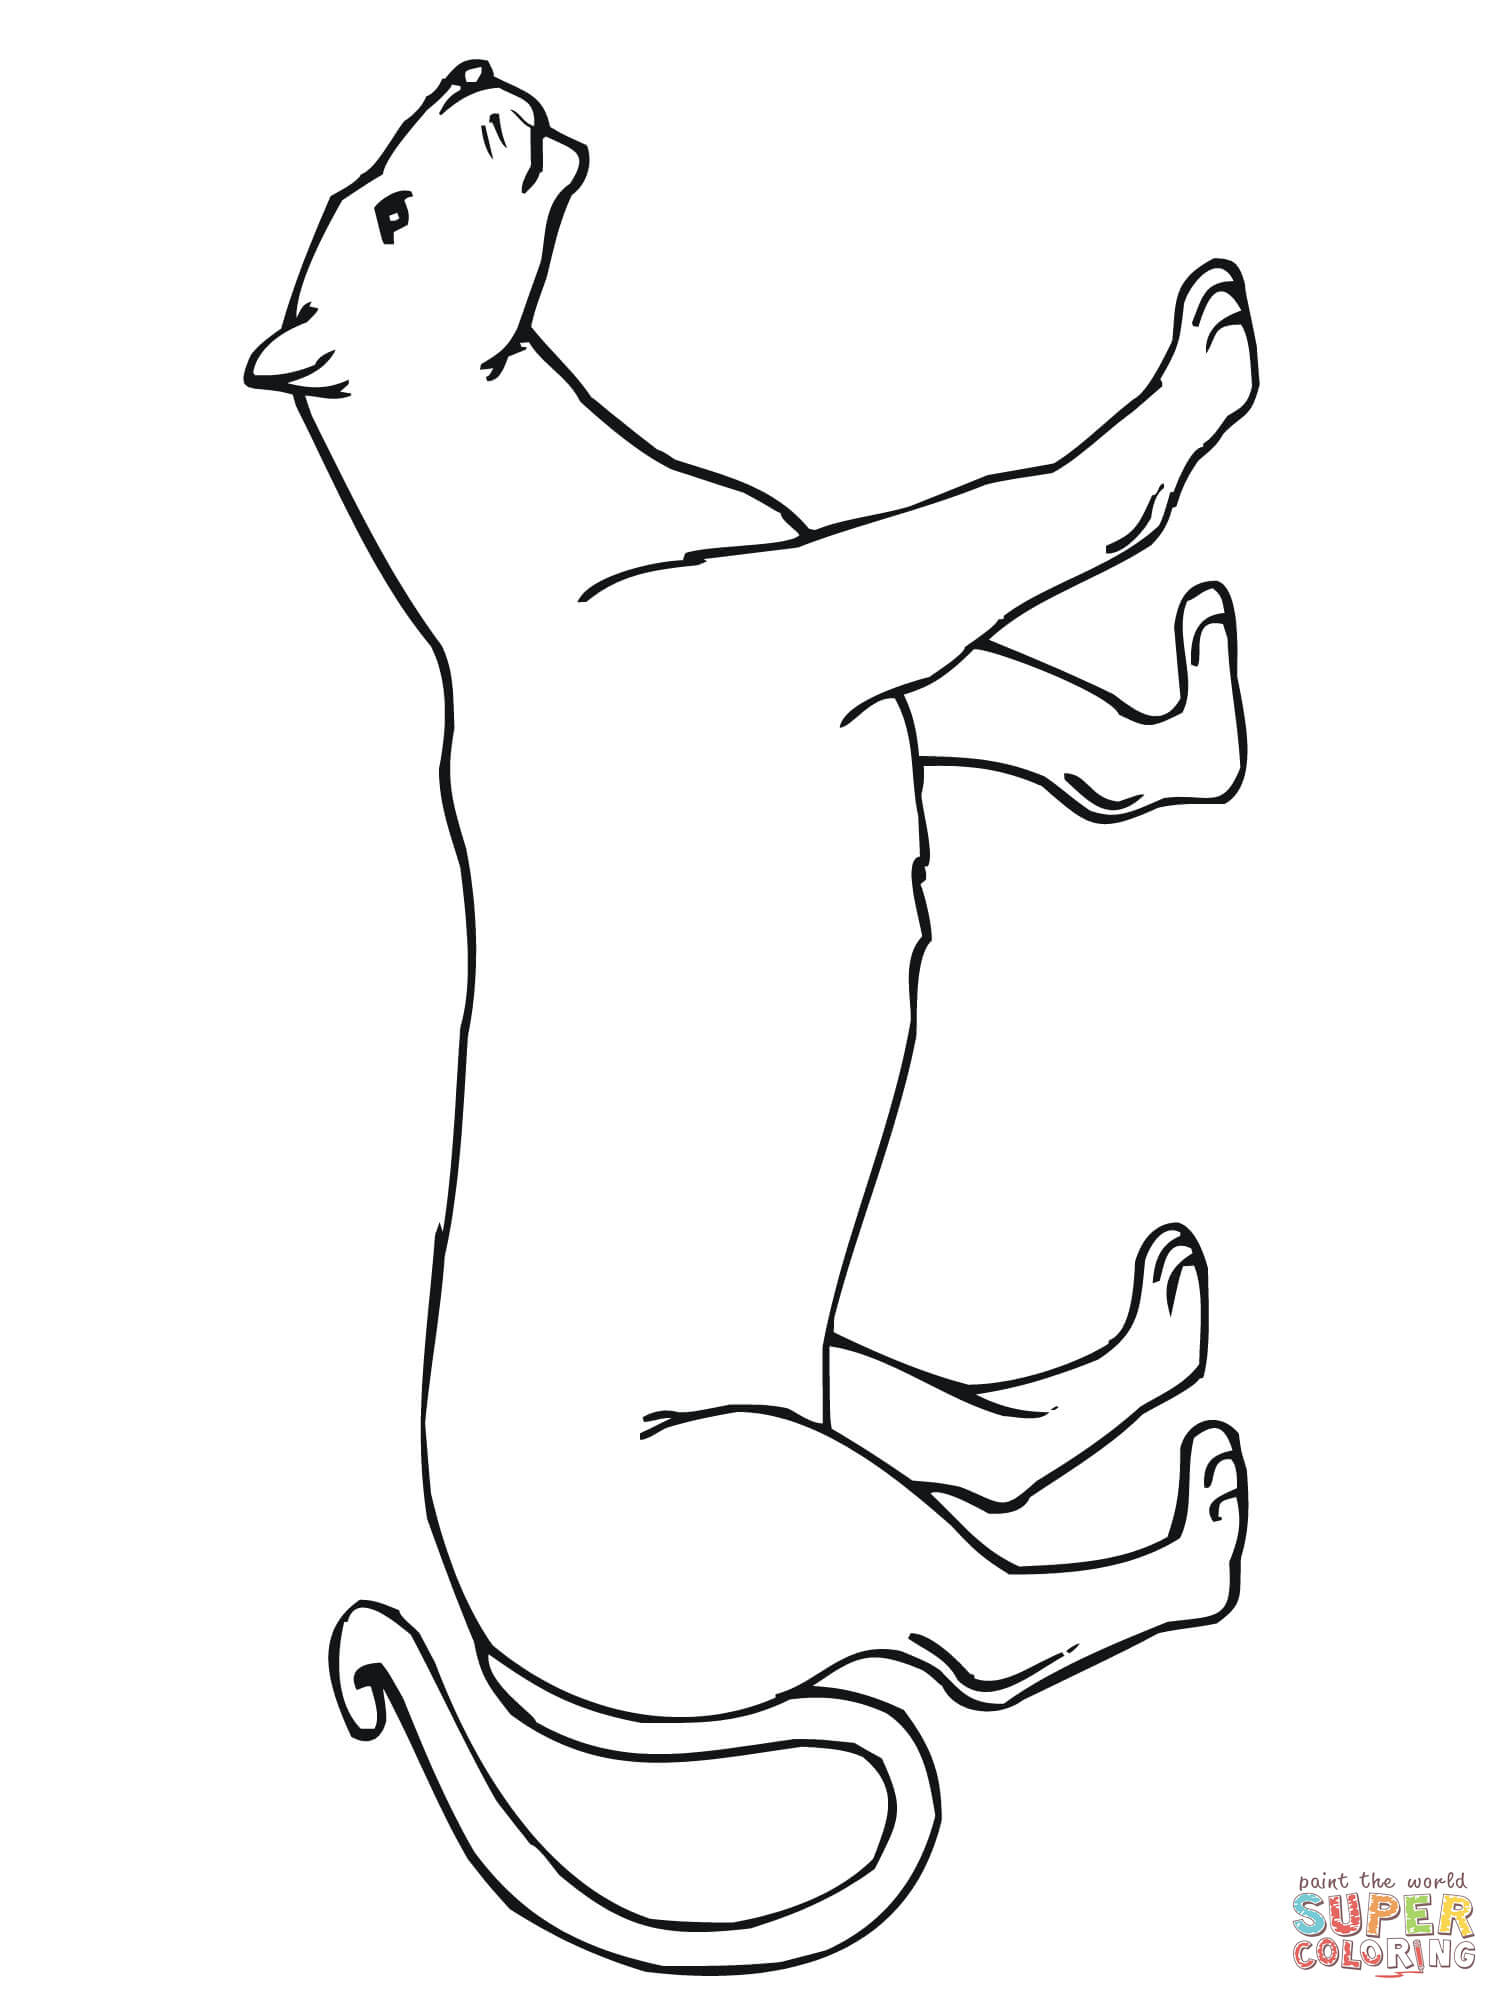 Walking Mountain Lion Coloring Page Coloring Home On july 25, 2012 apple released mountain lion (os x 10.8) as an upgrade to its operating system. walking mountain lion coloring page